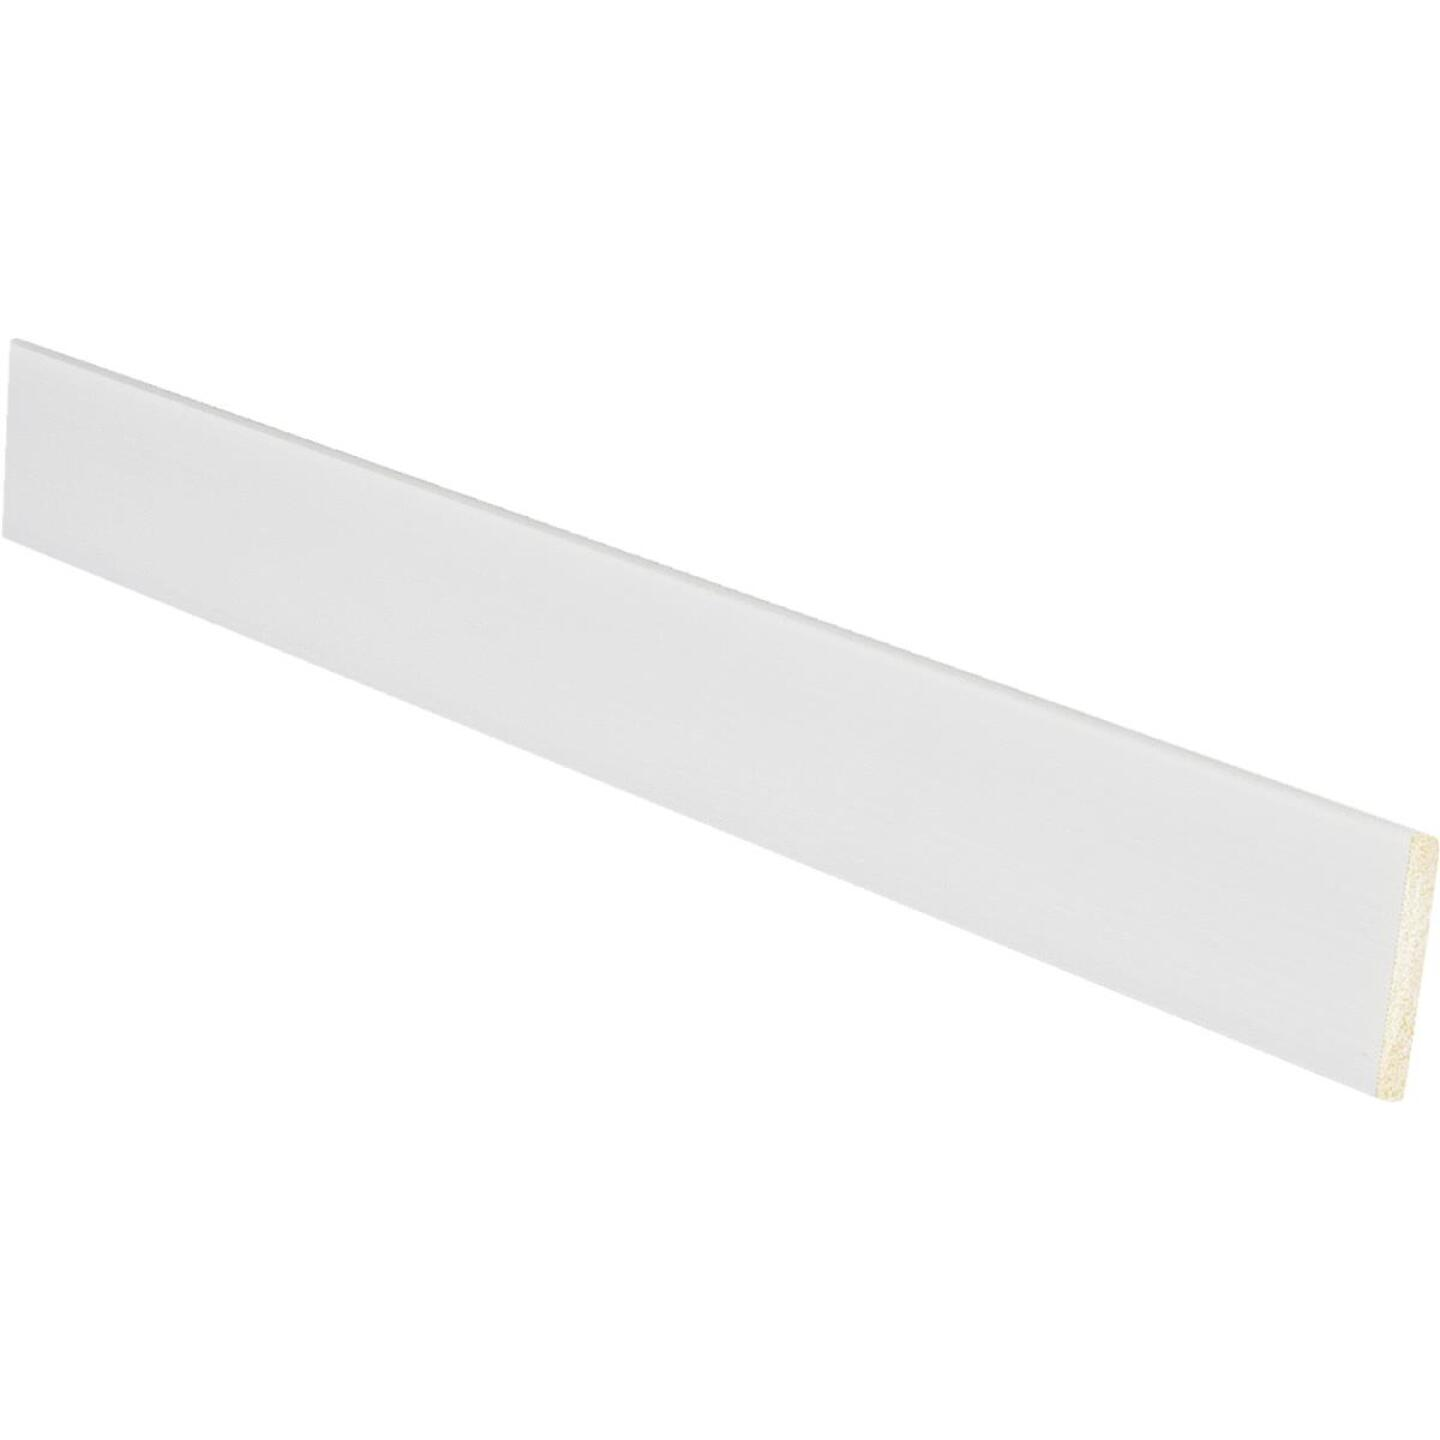 Inteplast Building Products 1/8 In. W. x 1-1/8 In. H. x 8 Ft. L. Crystal White Polystyrene Lattice Molding Image 1